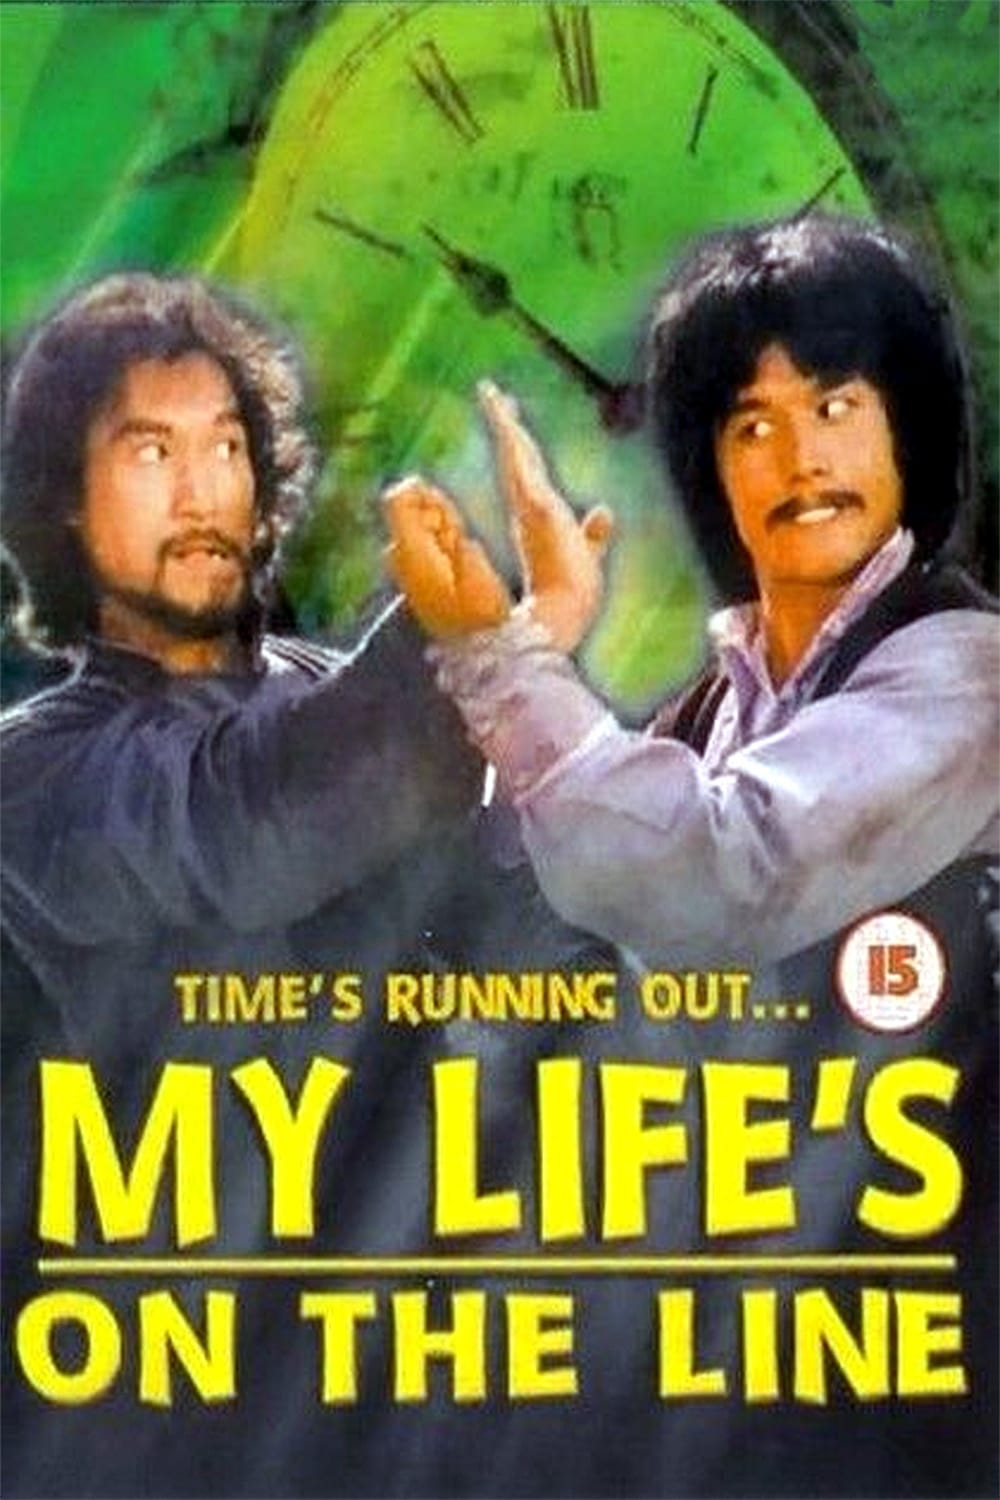 My Life's on the Line (1978)